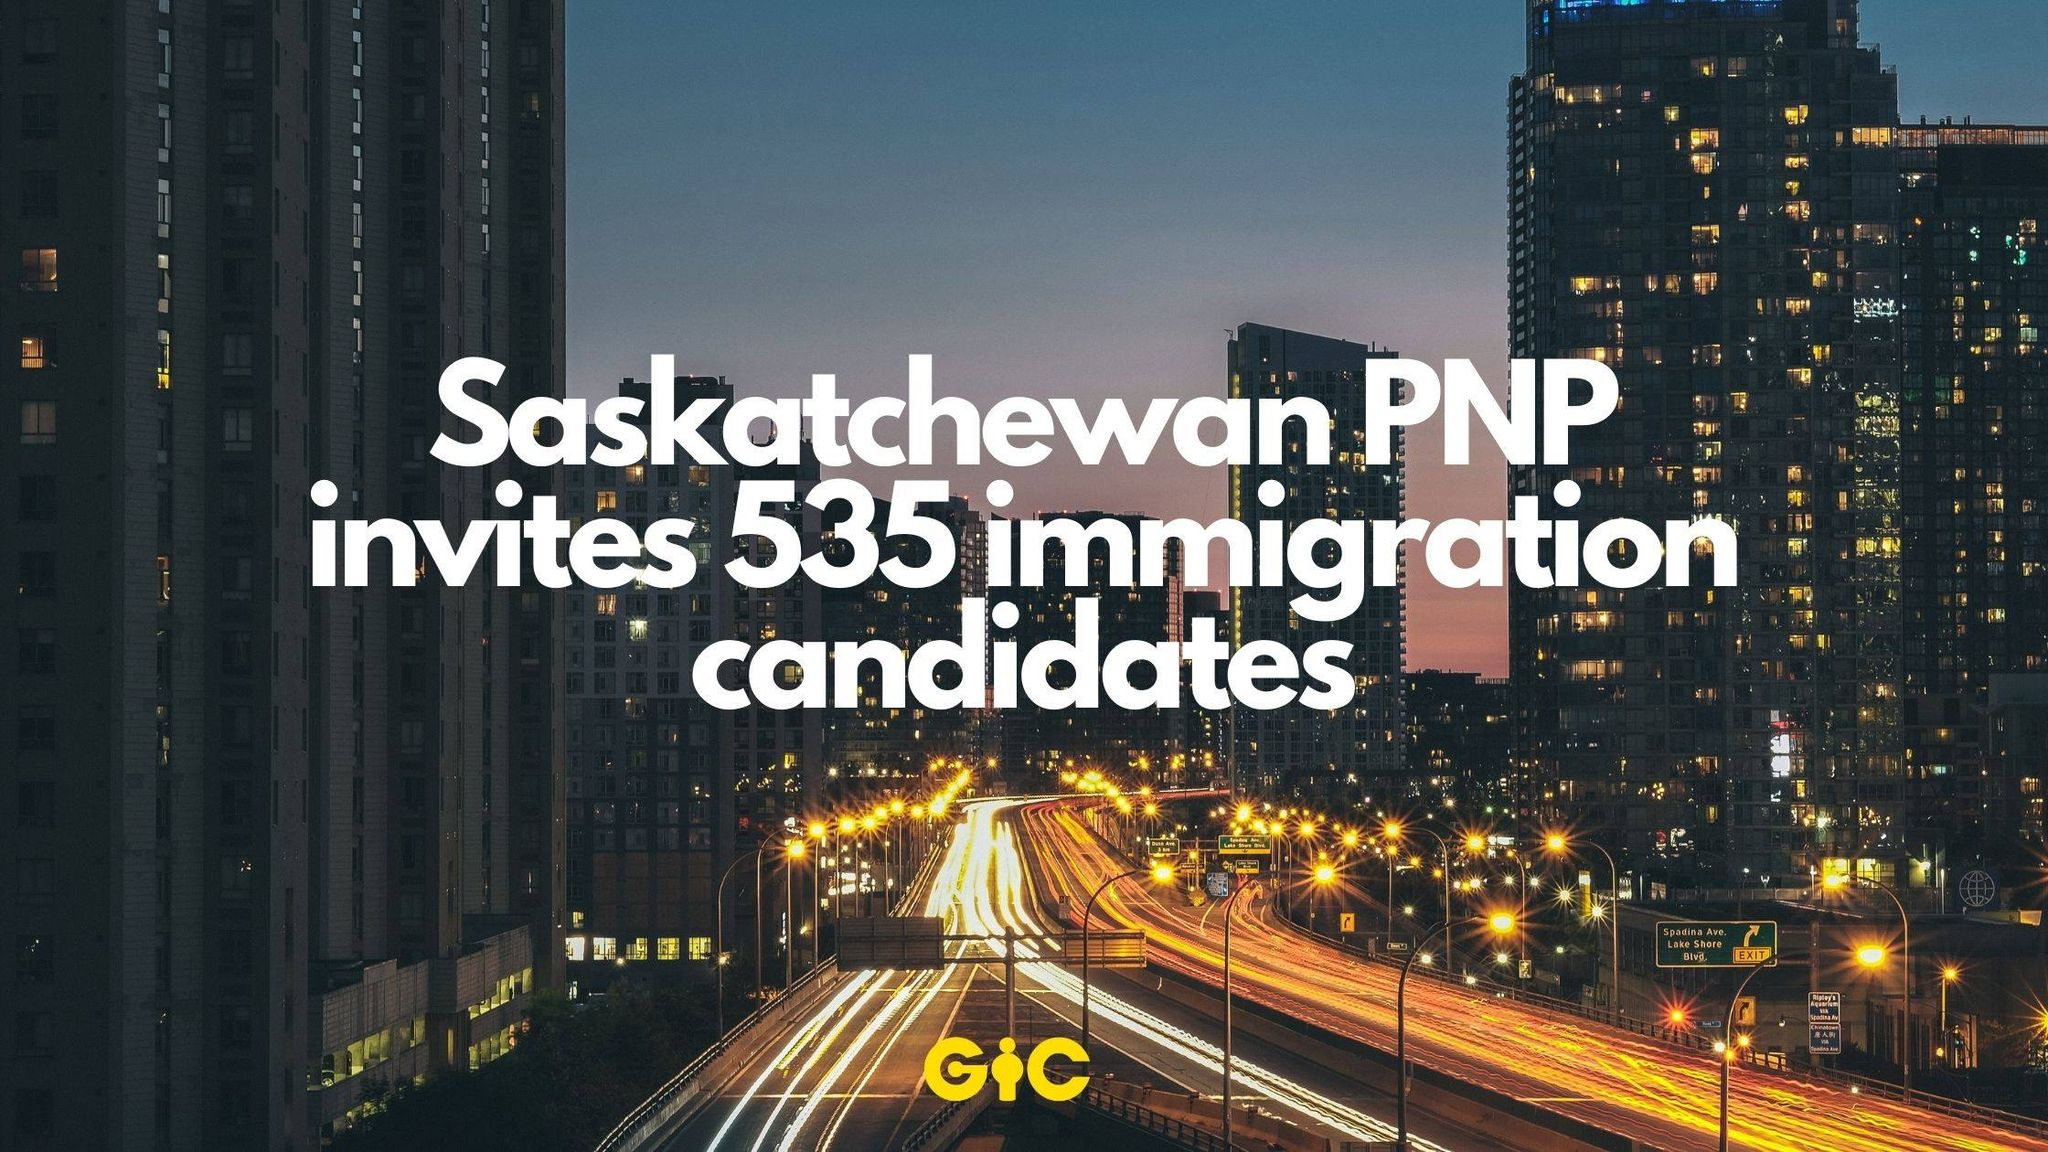 Saskatchewan PNP invites 535 immigration candidates